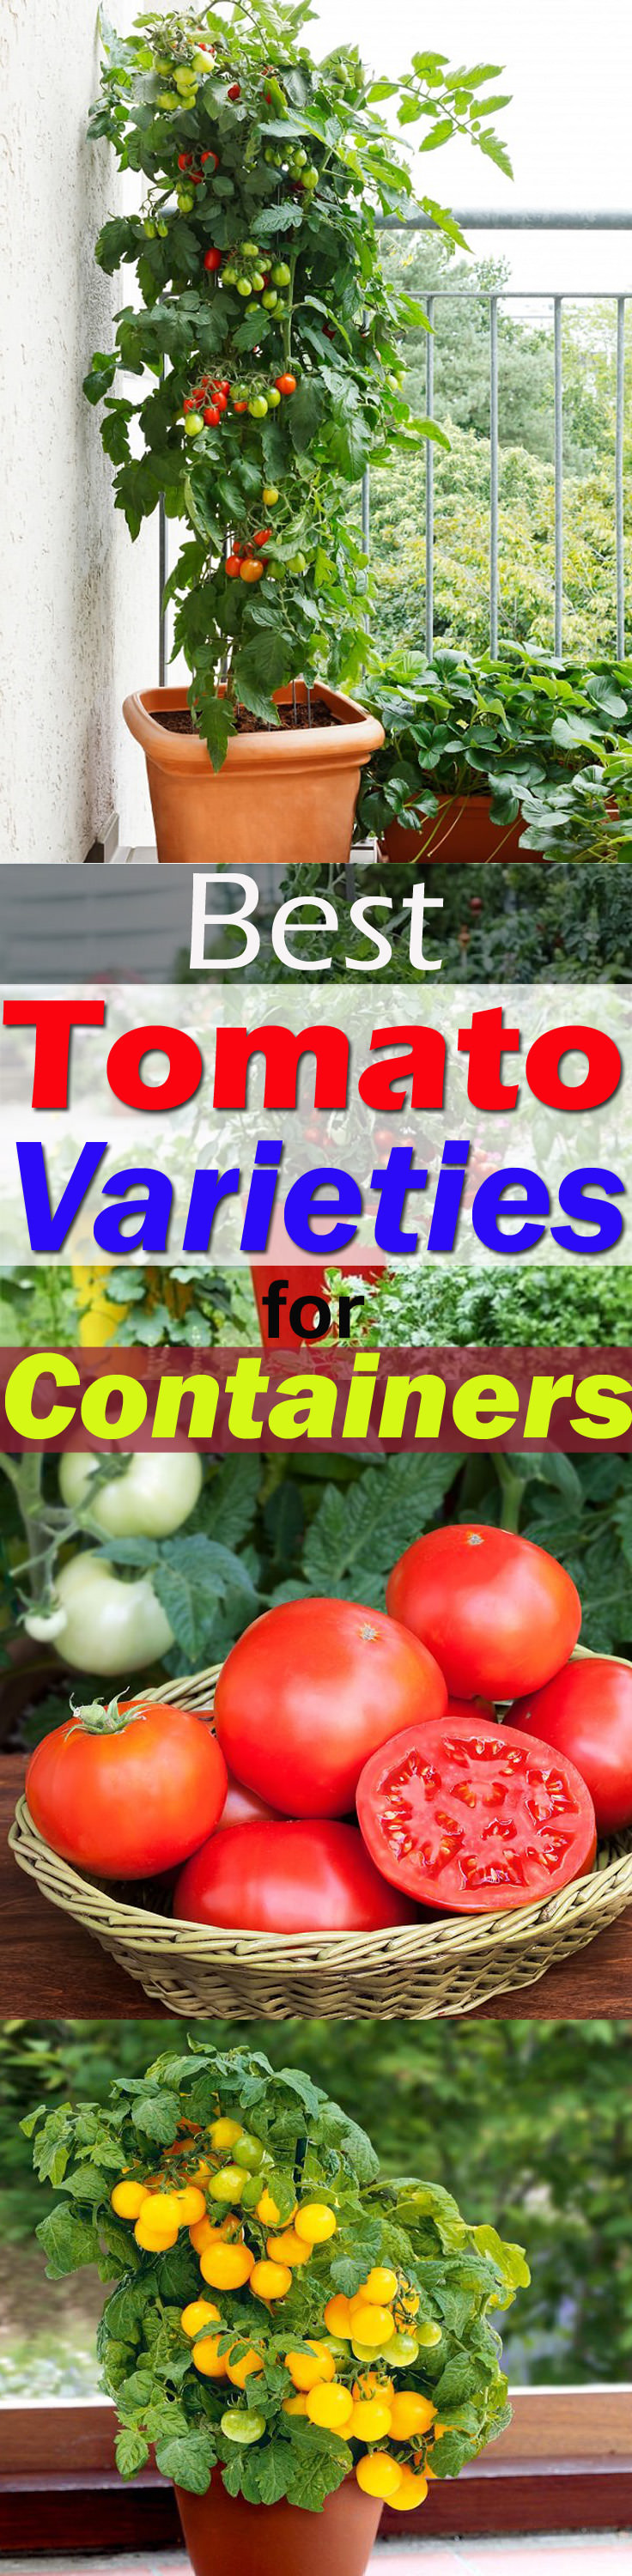 It is possible to grow tomatoes in pots, but there are a few BEST TOMATO VARIETIES FOR CONTAINERS that are easy to grow, taste